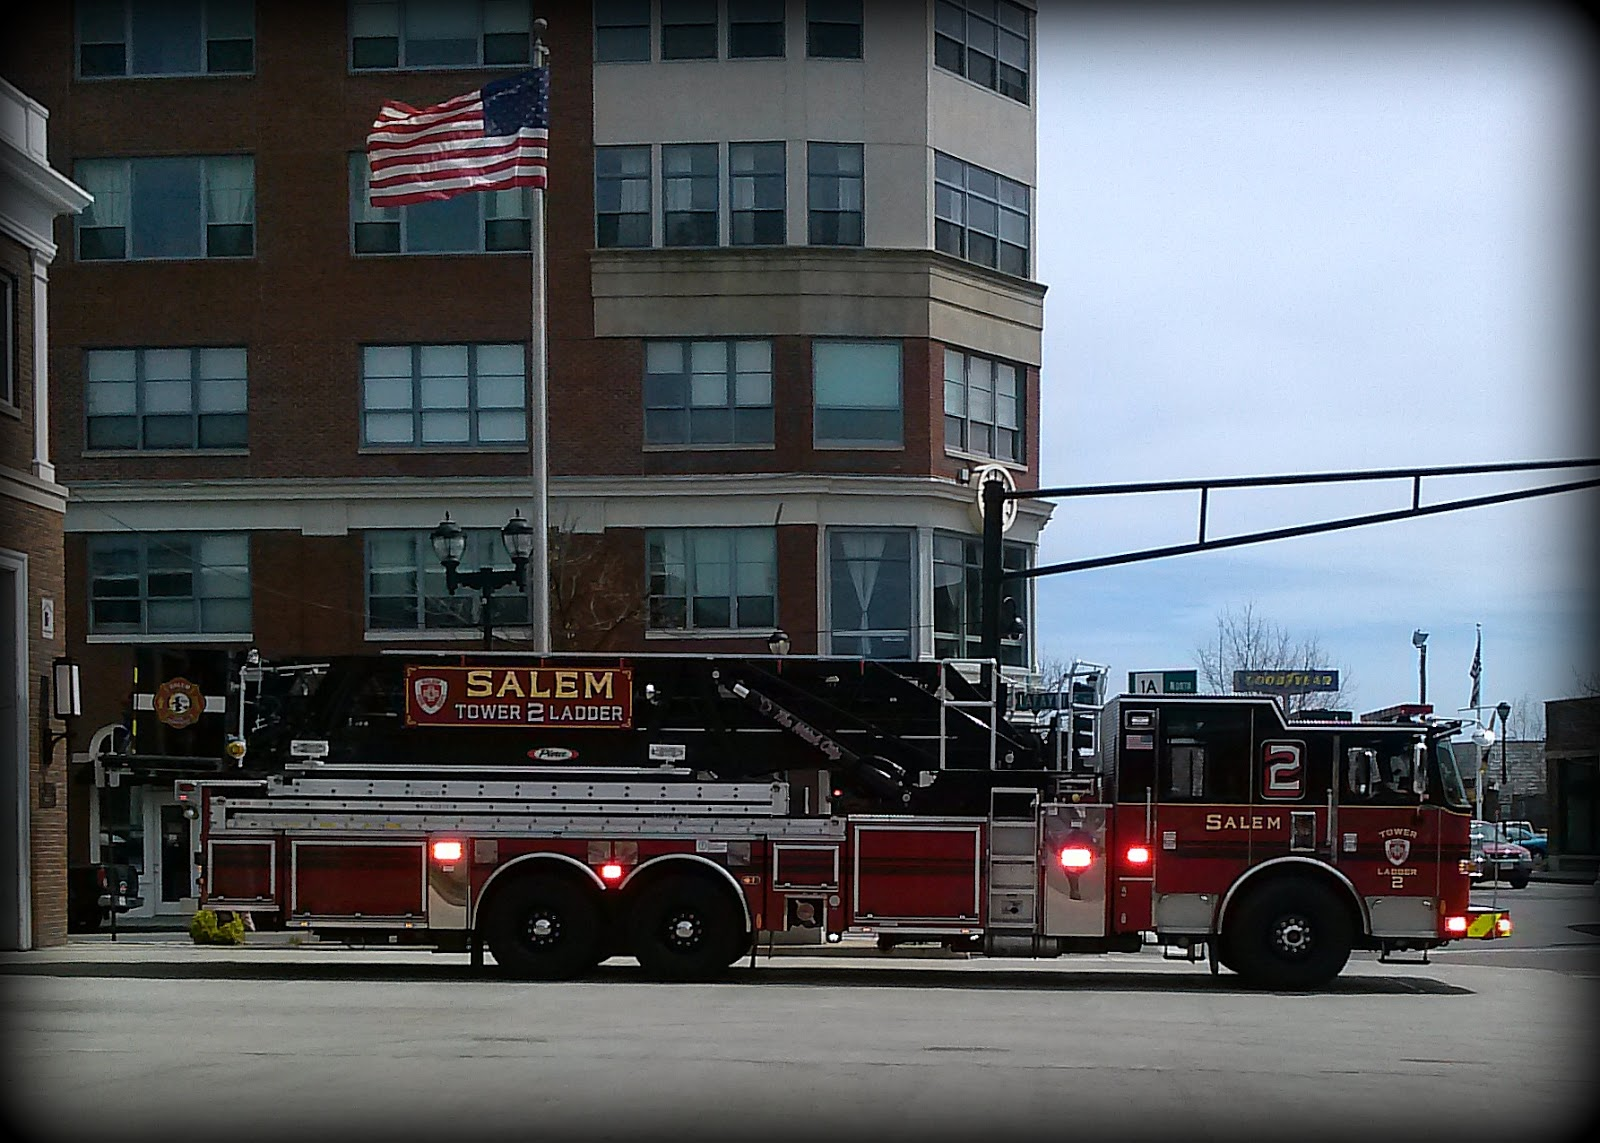 Salem Fire Dept. Ladder 2